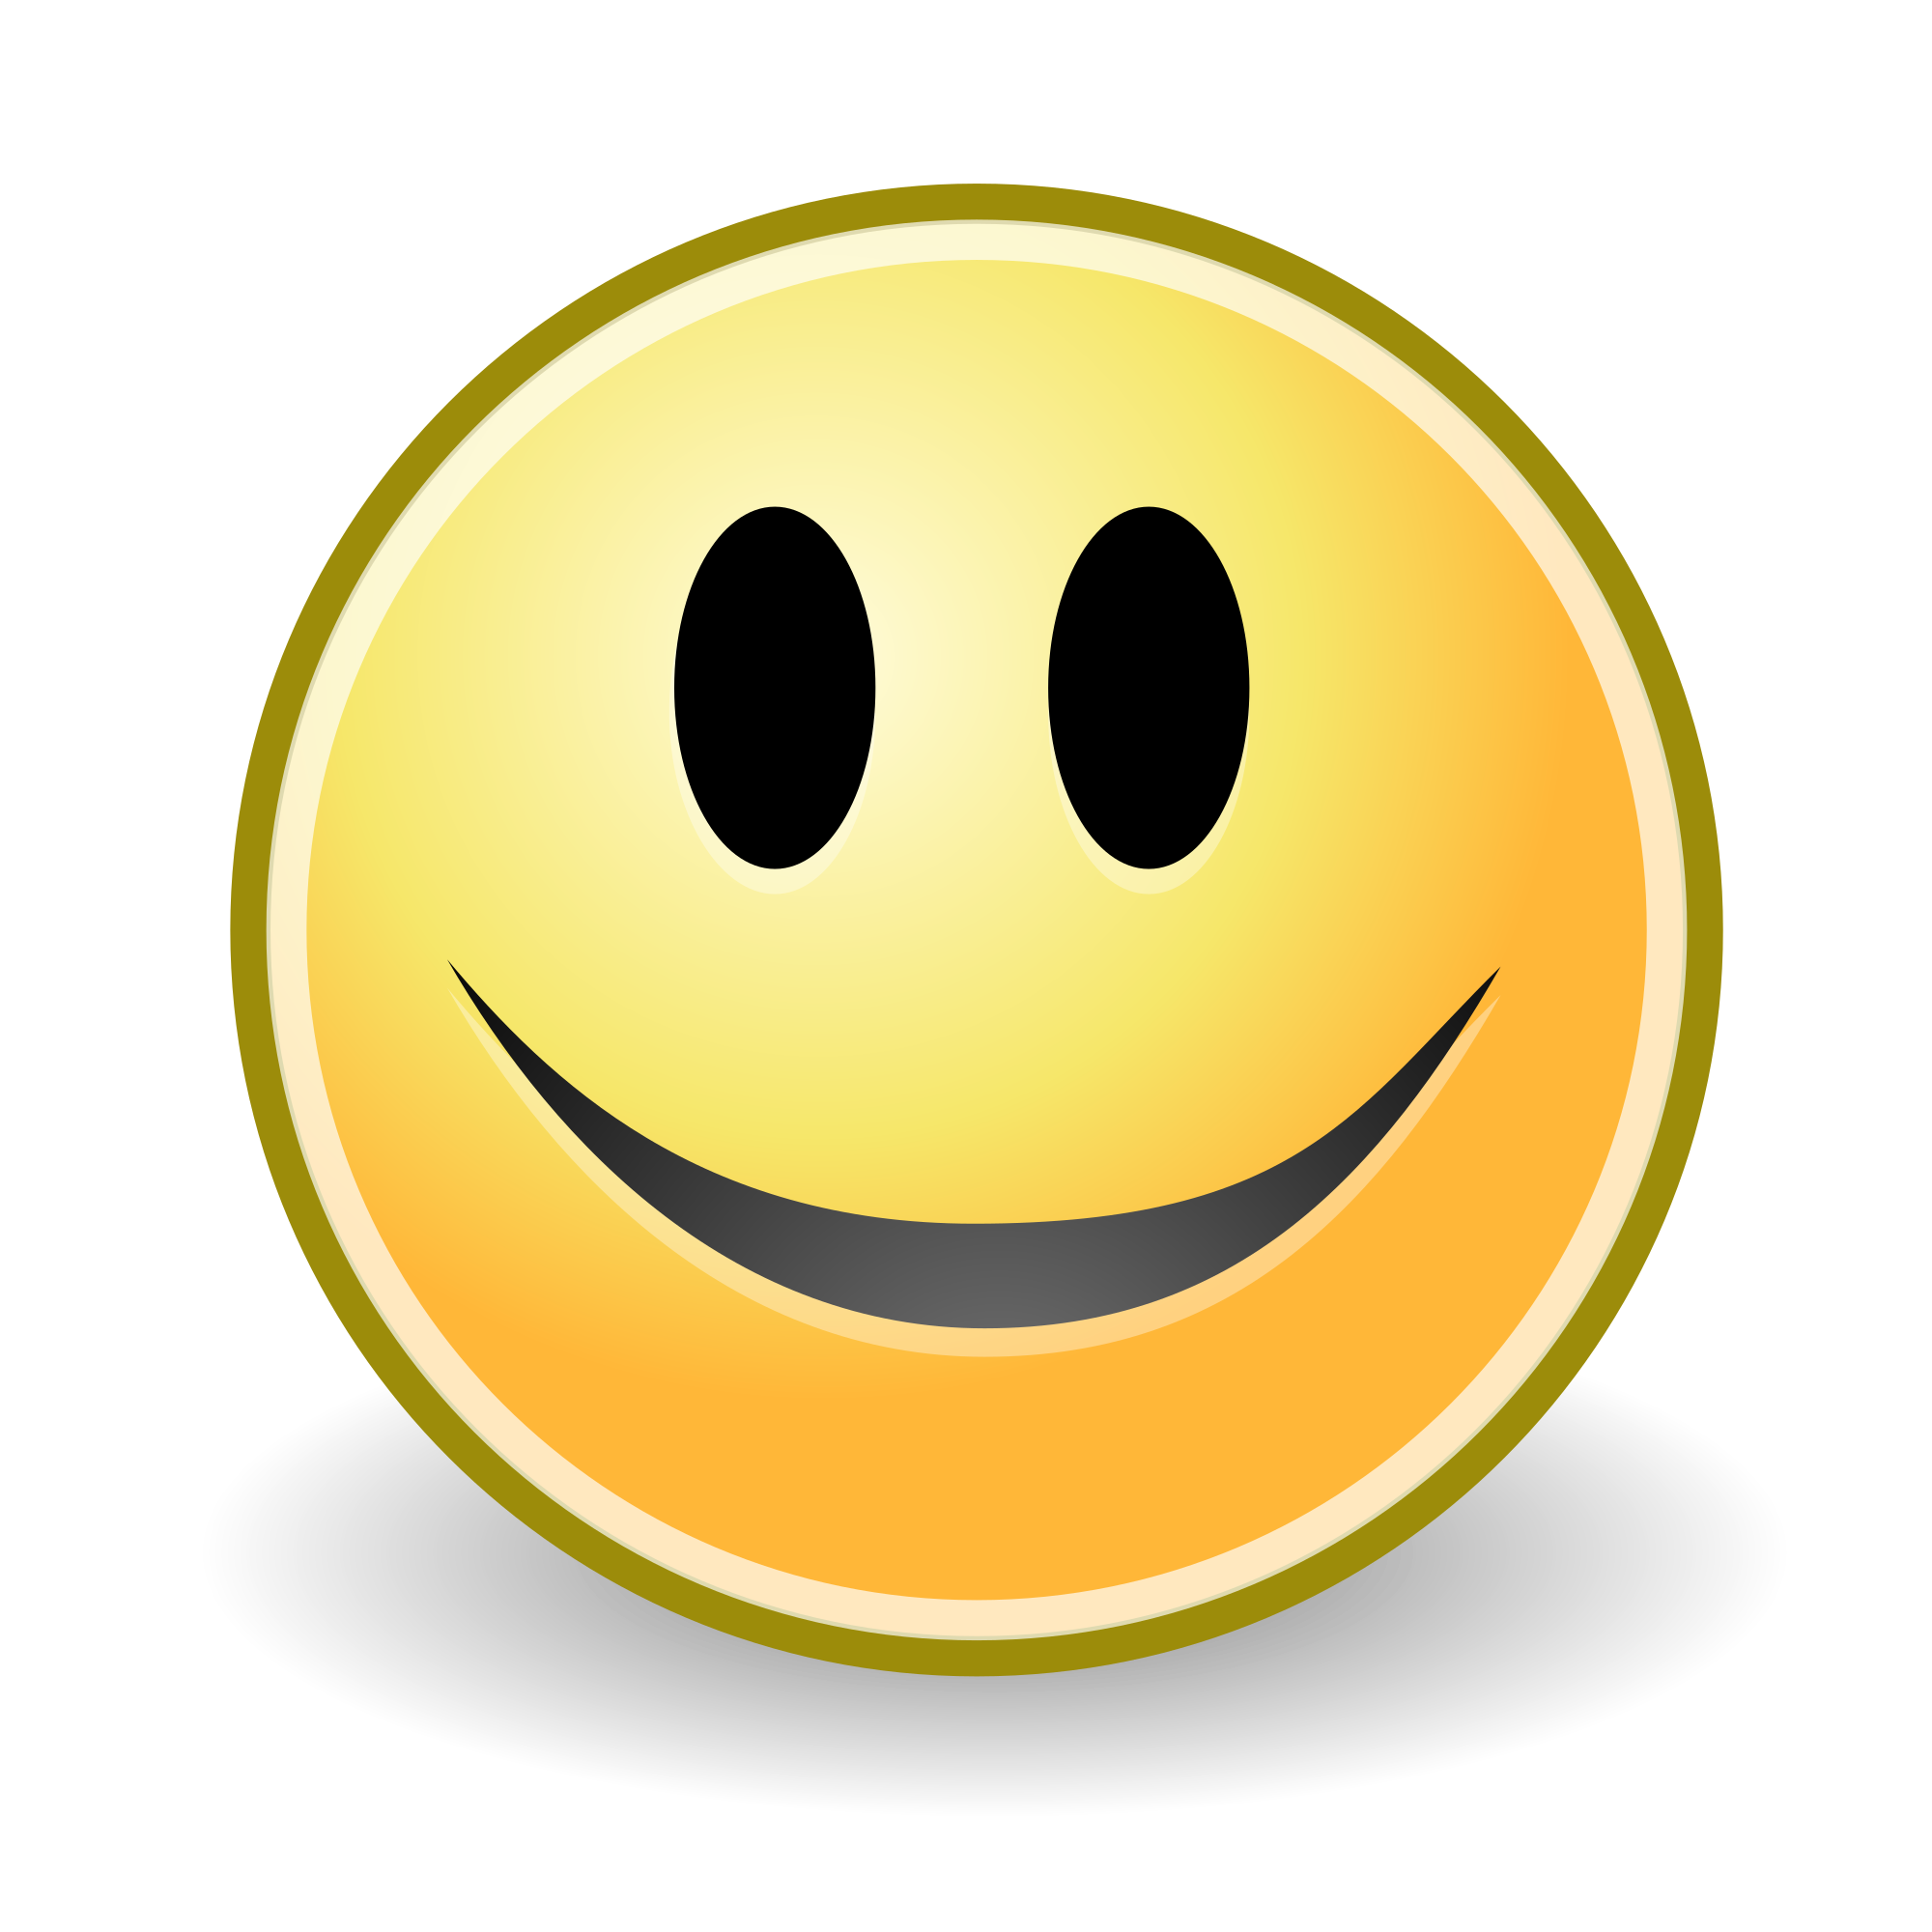 File:Face-smile.svg - Wikimedia Commons